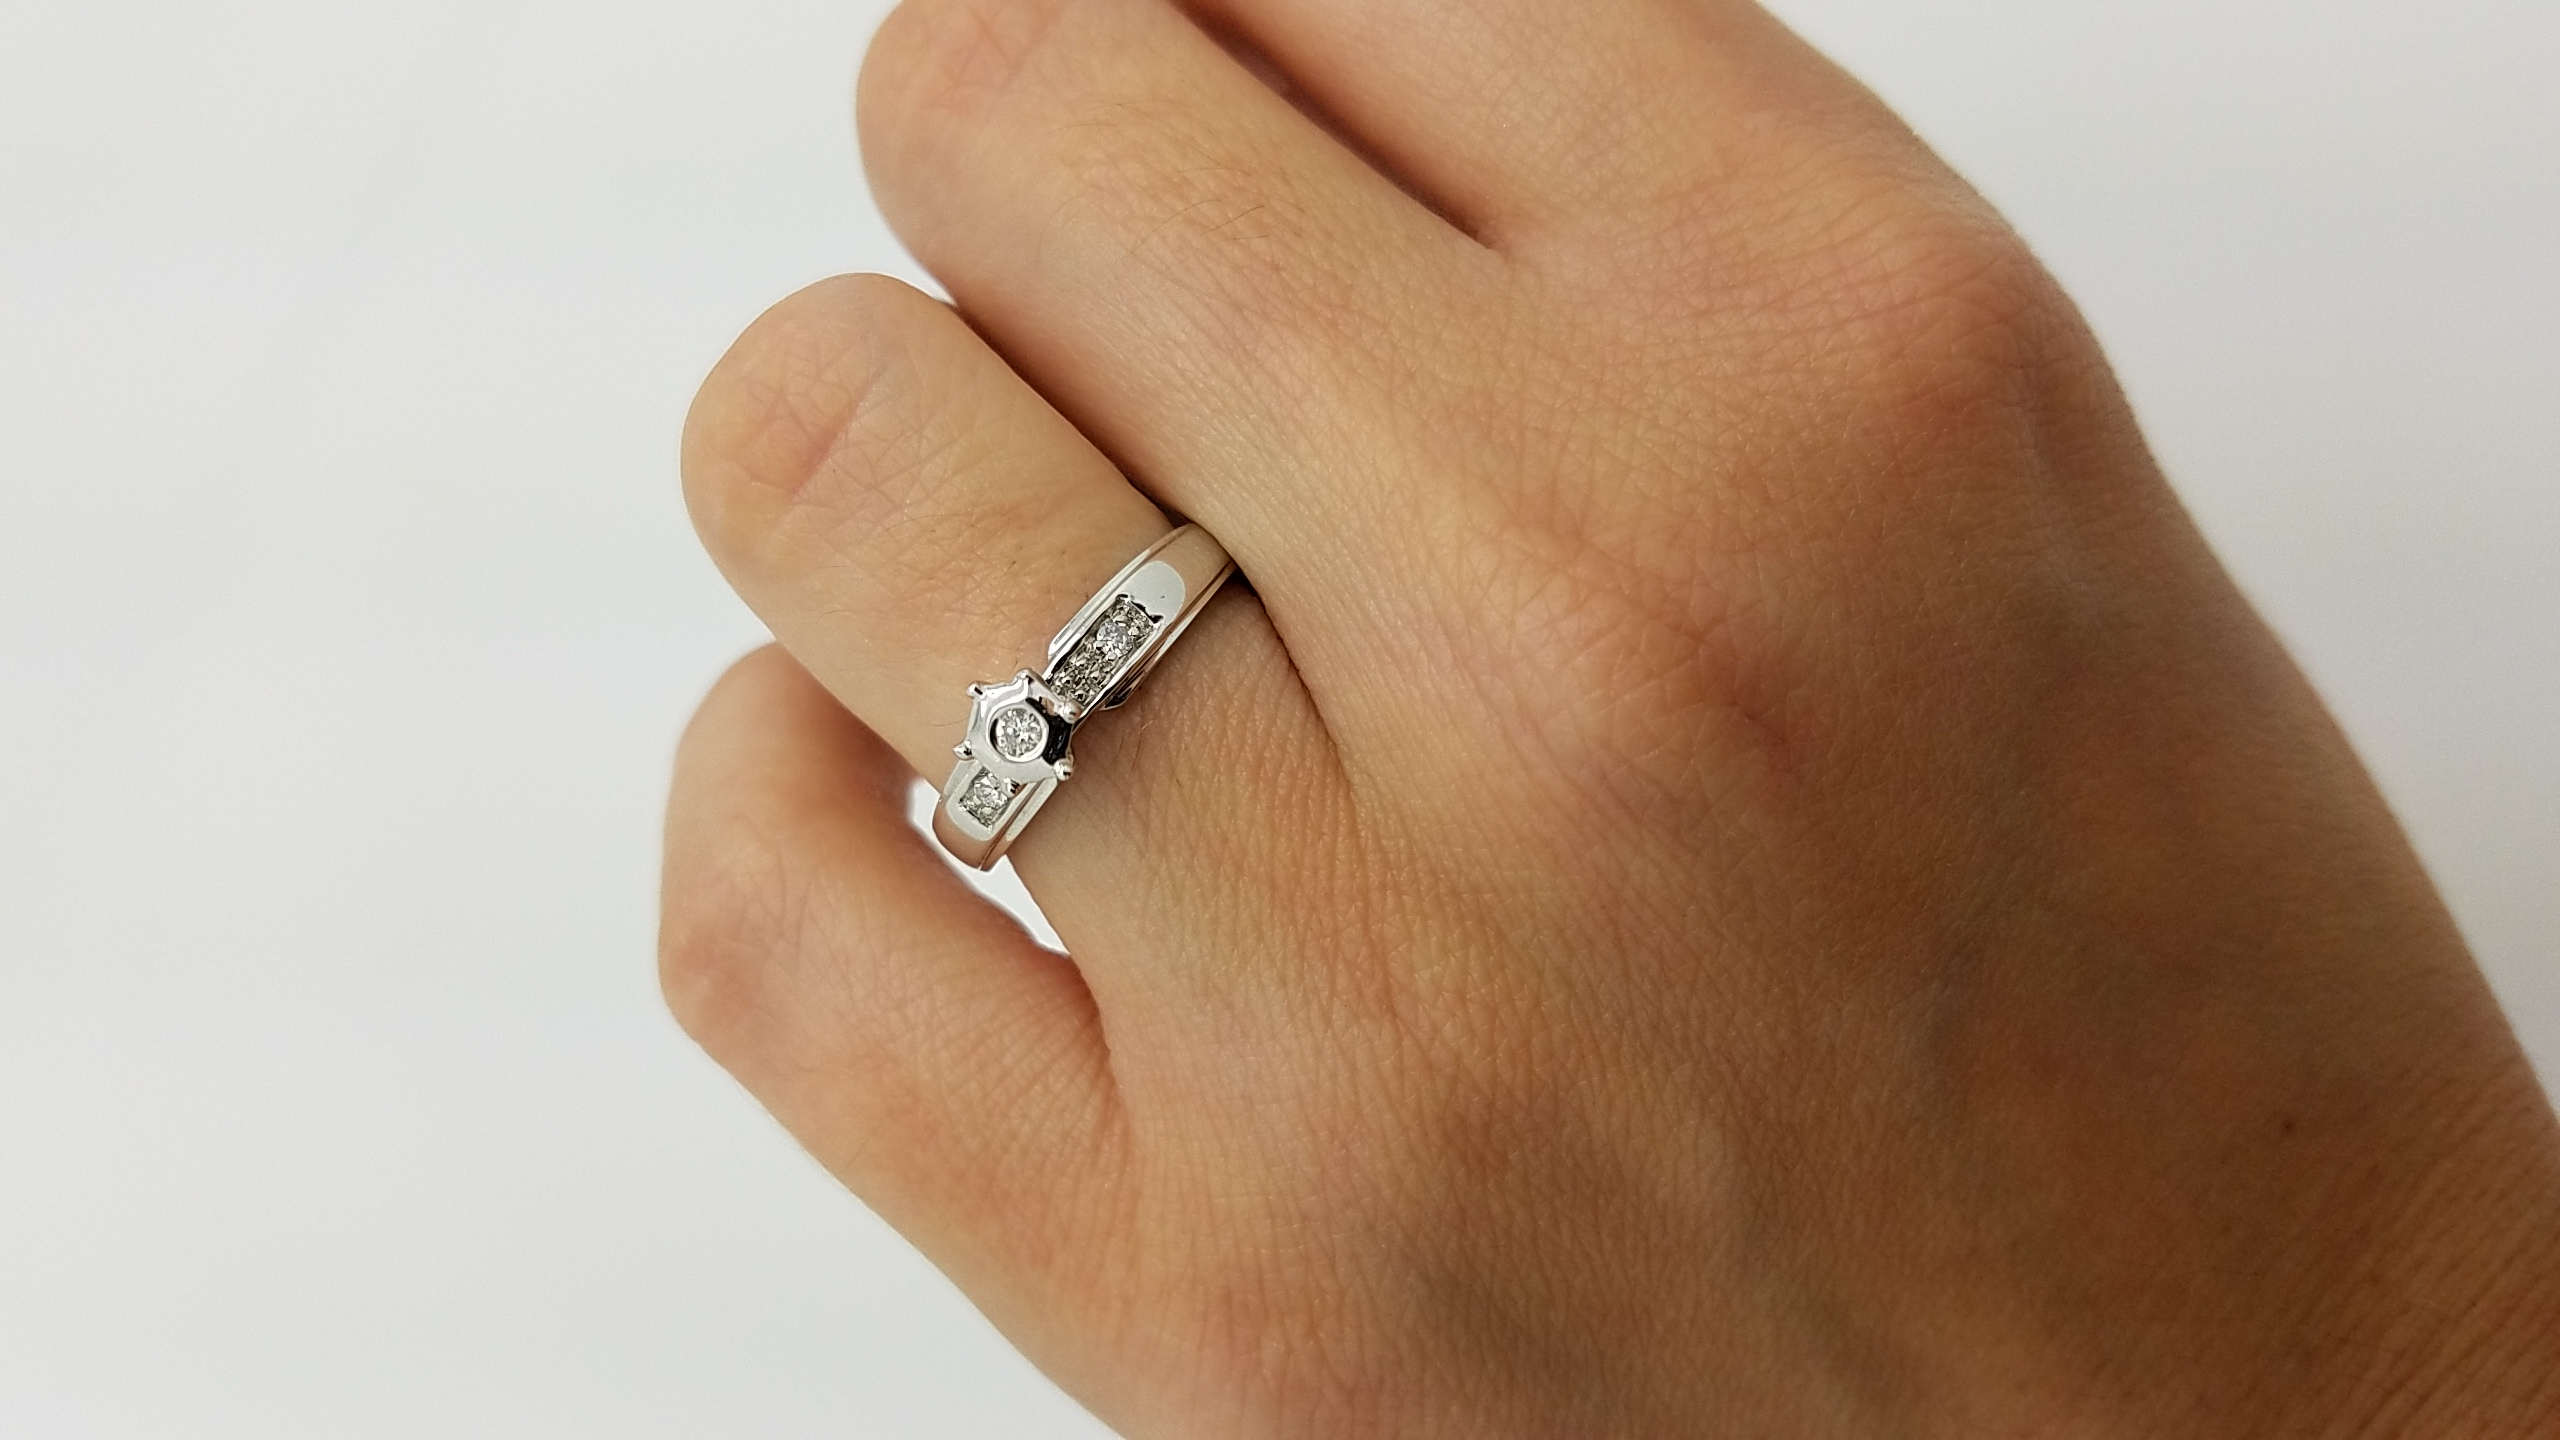 14K        White Gold        ilussion         0.08        ct.        ROUND        Cut        Diamond        Bezel-Set        Solitaire with Accents                Engagement-Ring